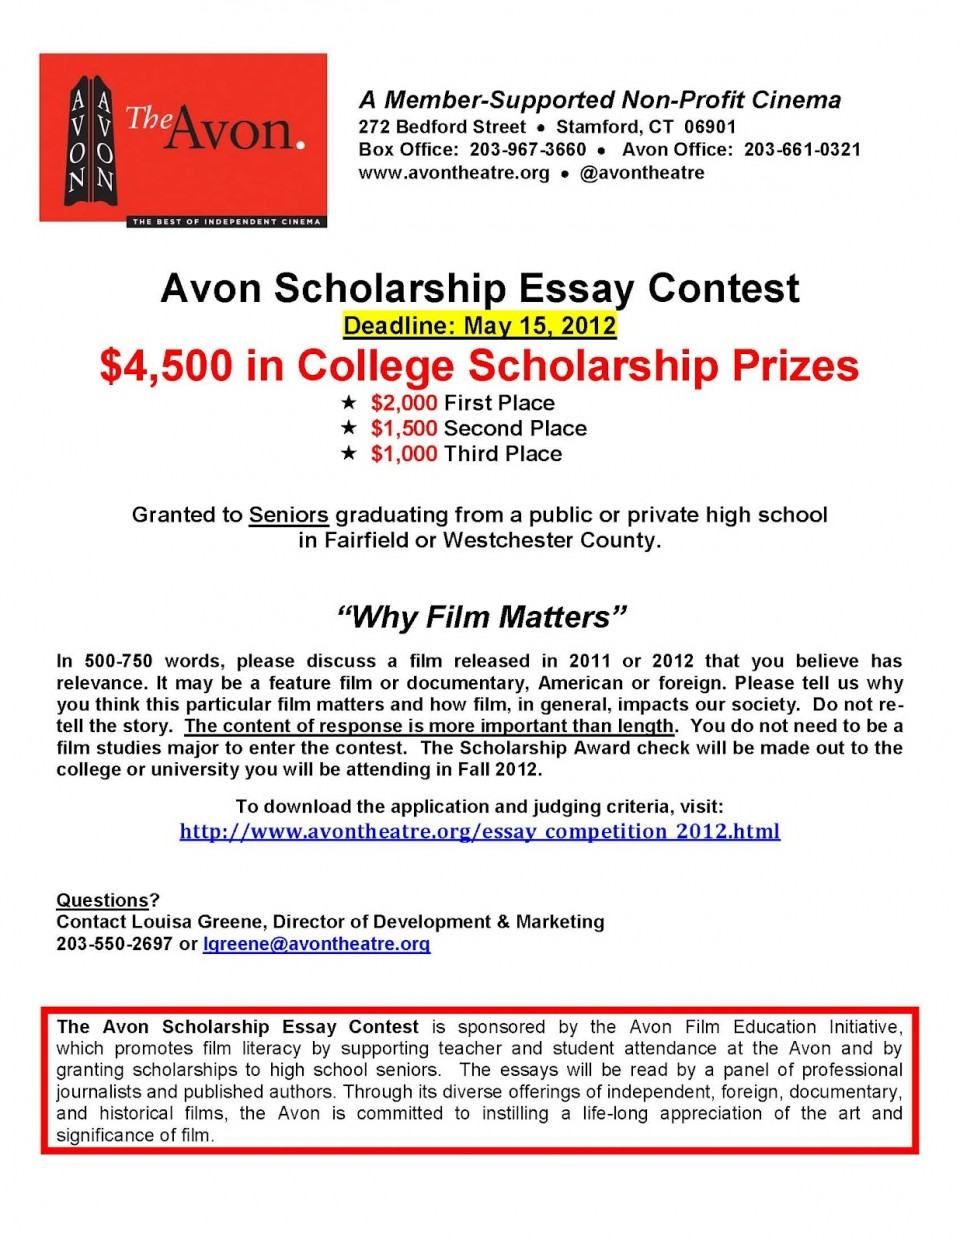 016 Avonscholarshipessaycontest2012flyer Essay Example Shocking Scholarships For High School Students 2018 2019 960